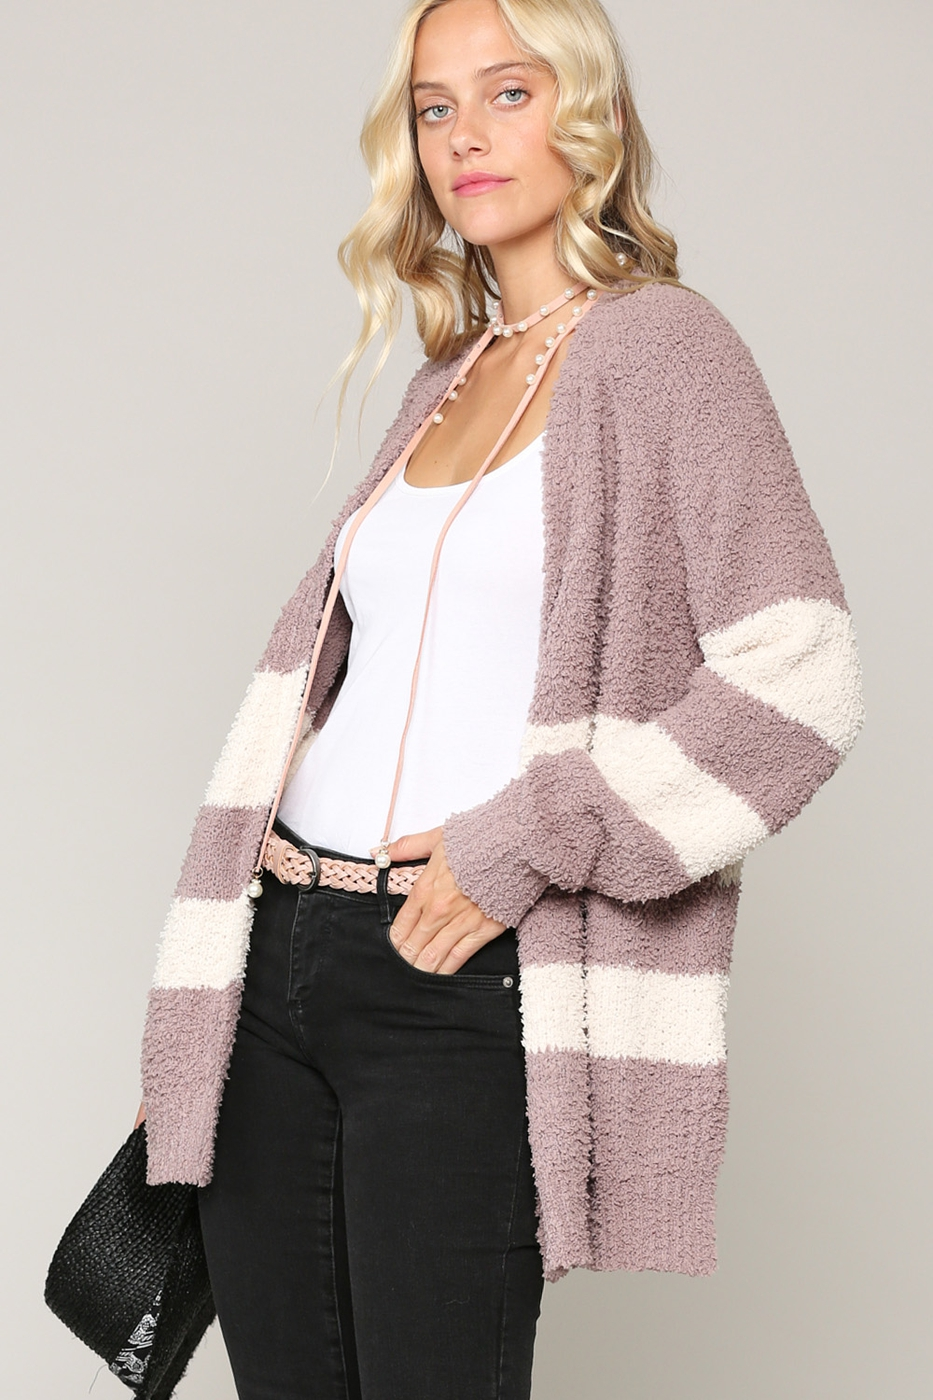 SOFT FUZZY CARDIGAN IN STRIPE PATTERN - orangeshine.com